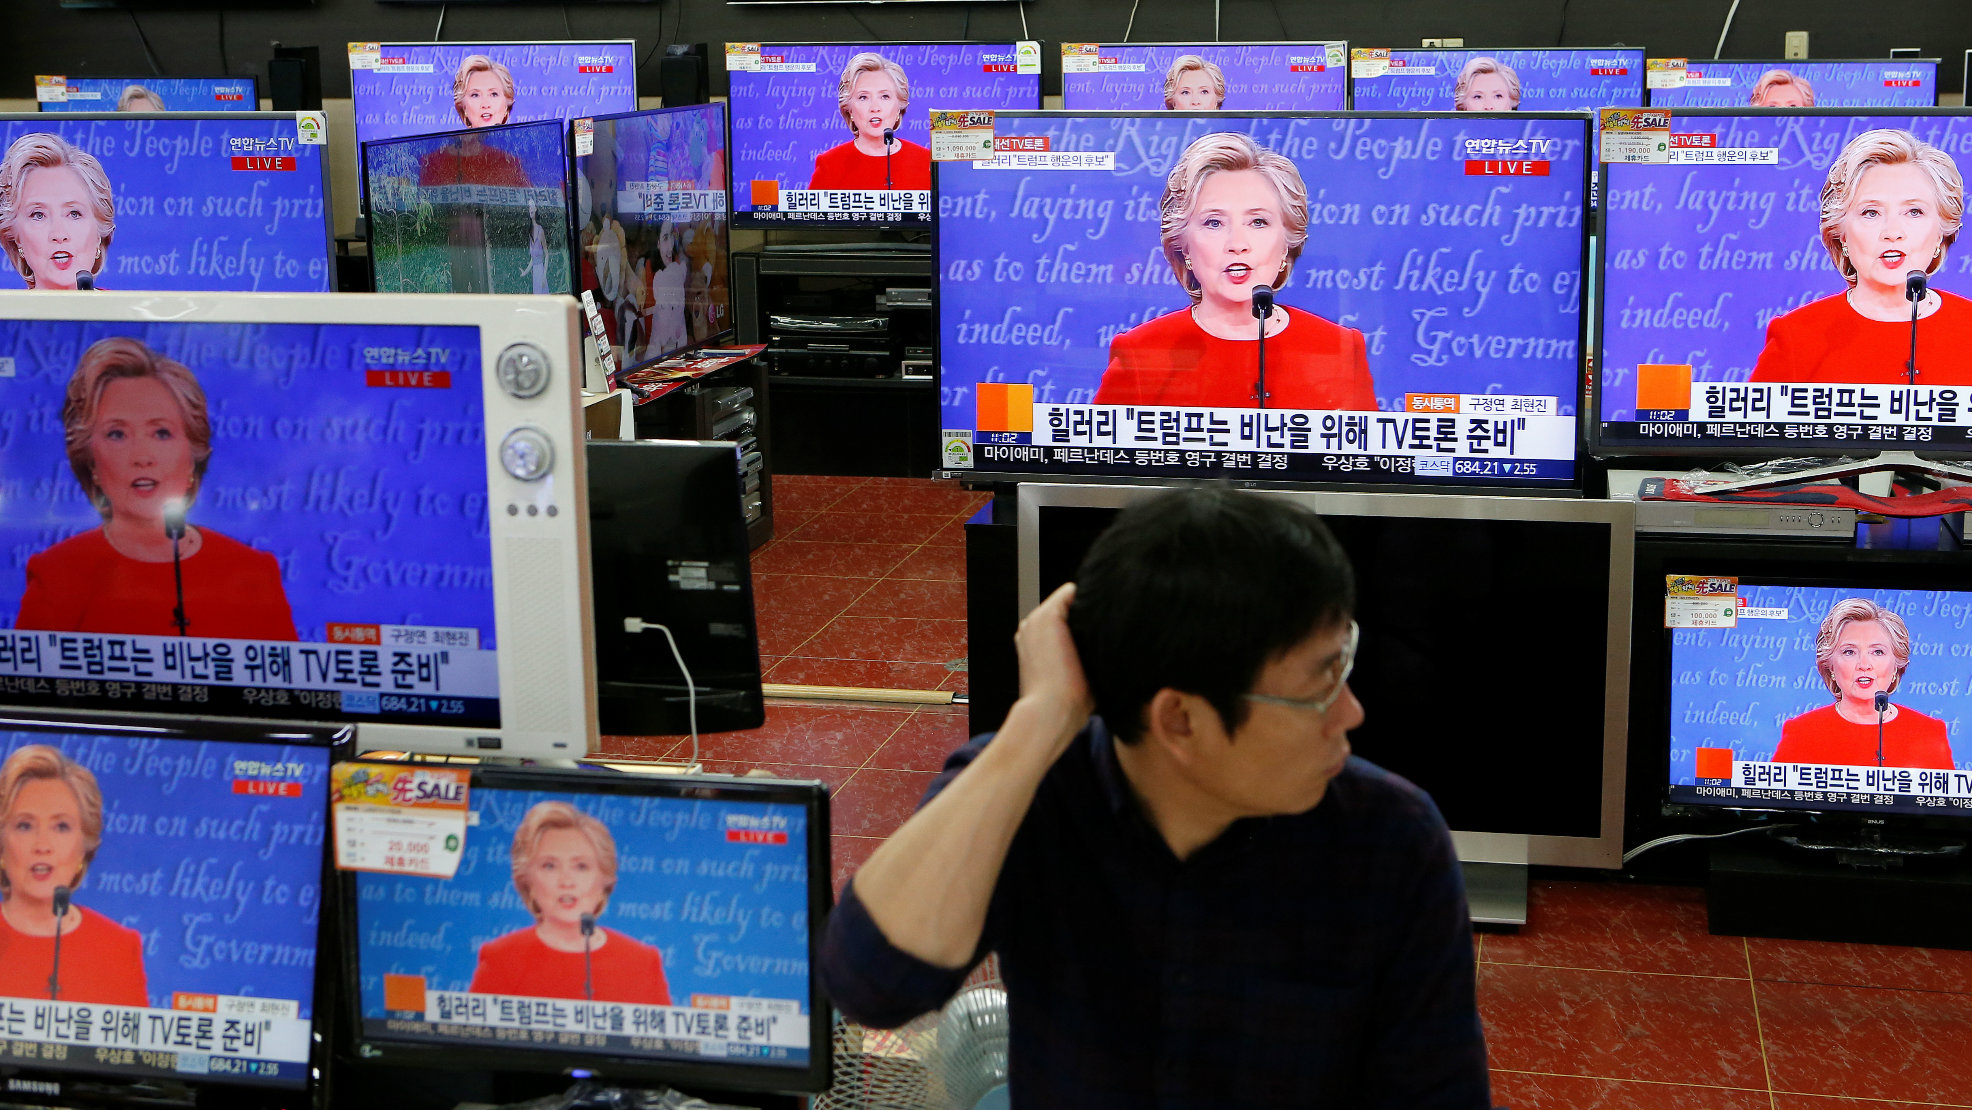 A sales assistant watches the TV broadcast of the first presidential debate between U.S. Democratic presidential candidate Hillary Clinton and Republican presidential nominee Donald Trump, in Seoul, South Korea, September 27, 2016.